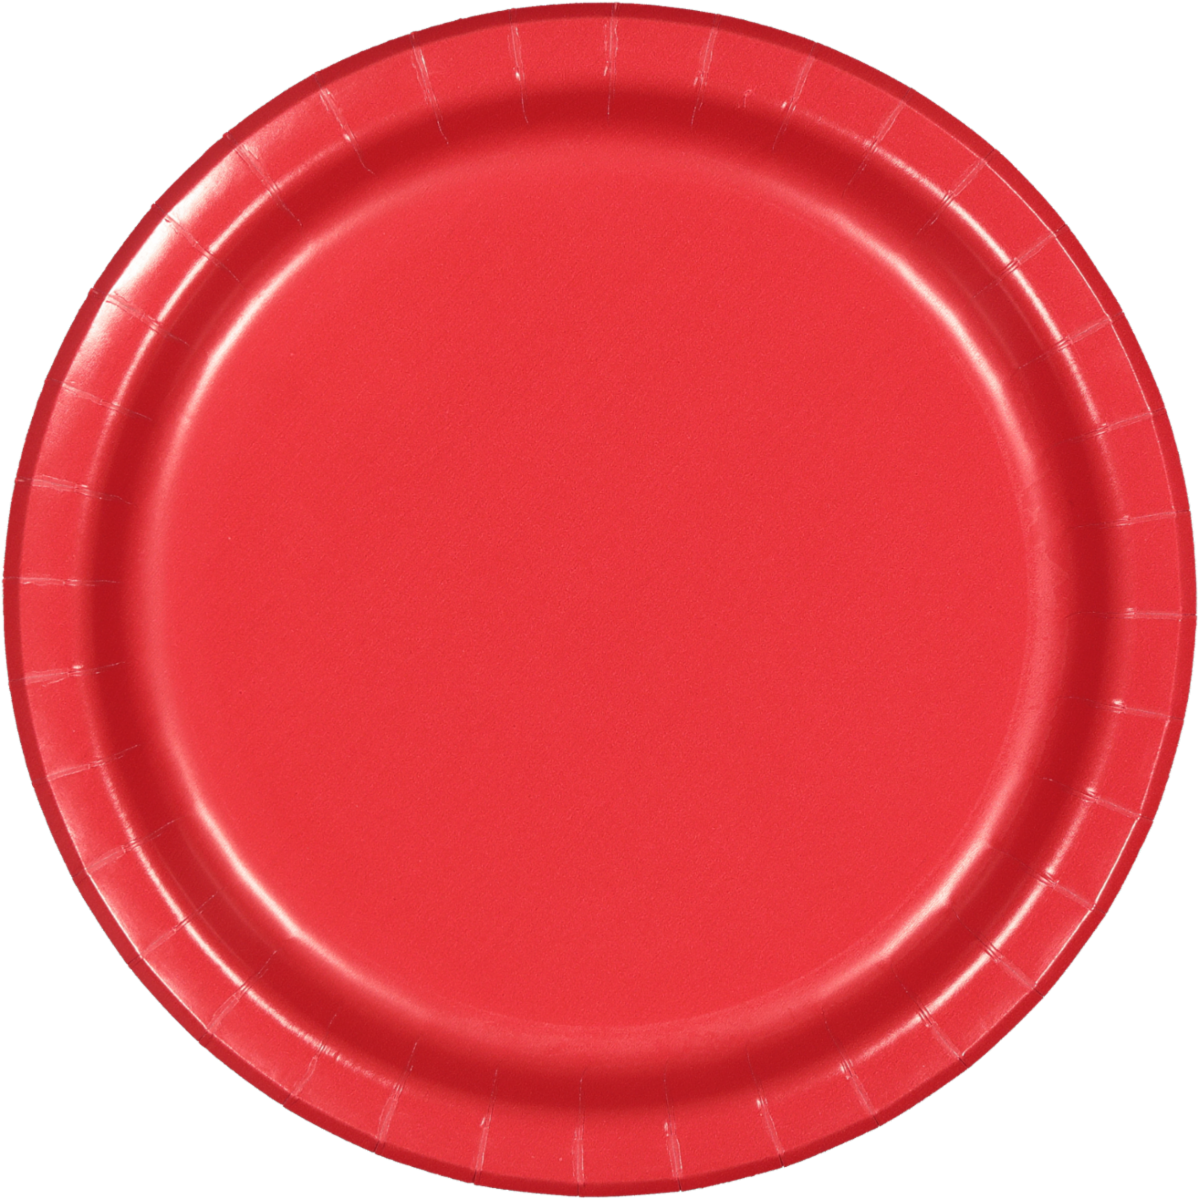 SOLID RED PLATES 8PCS